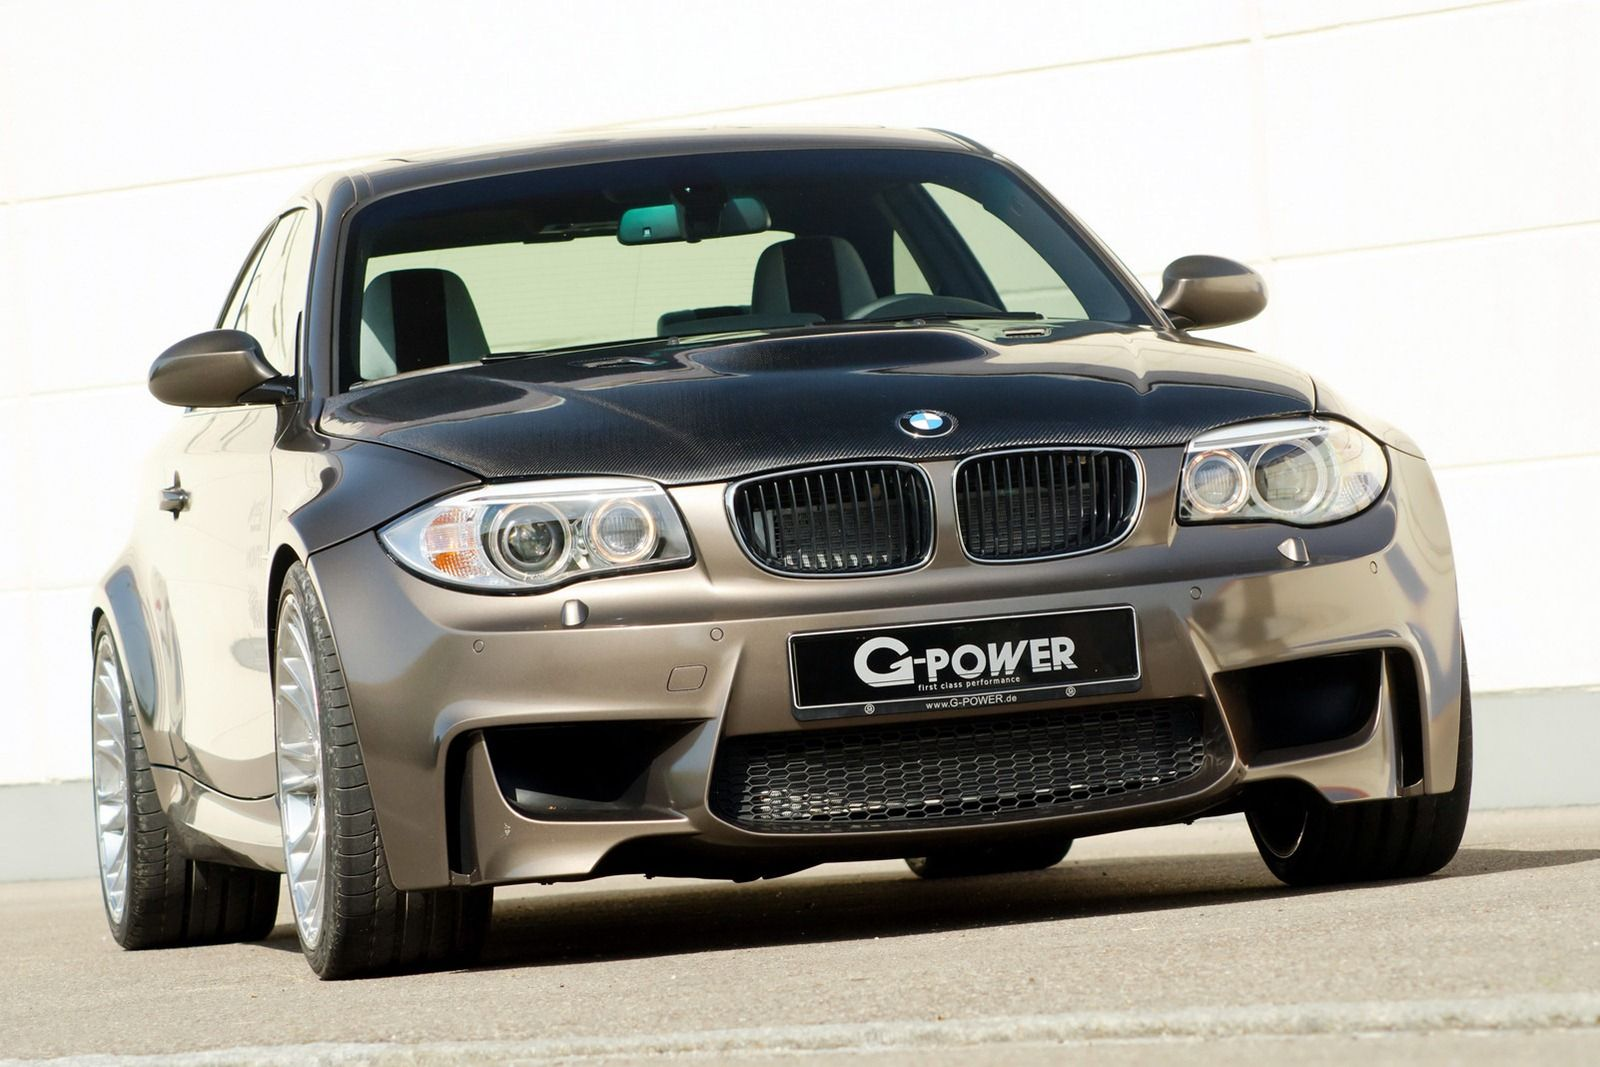 G Power Builds Insane Bmw 1 M Coupe With 592hp V8 And Top Speed Of 330km H 205mph Carscoop The Compact Sized G1 V8 Hurricane R Bmw Bmw 1 Series Bmw Cars 2013 bmw 1 series m coupe by